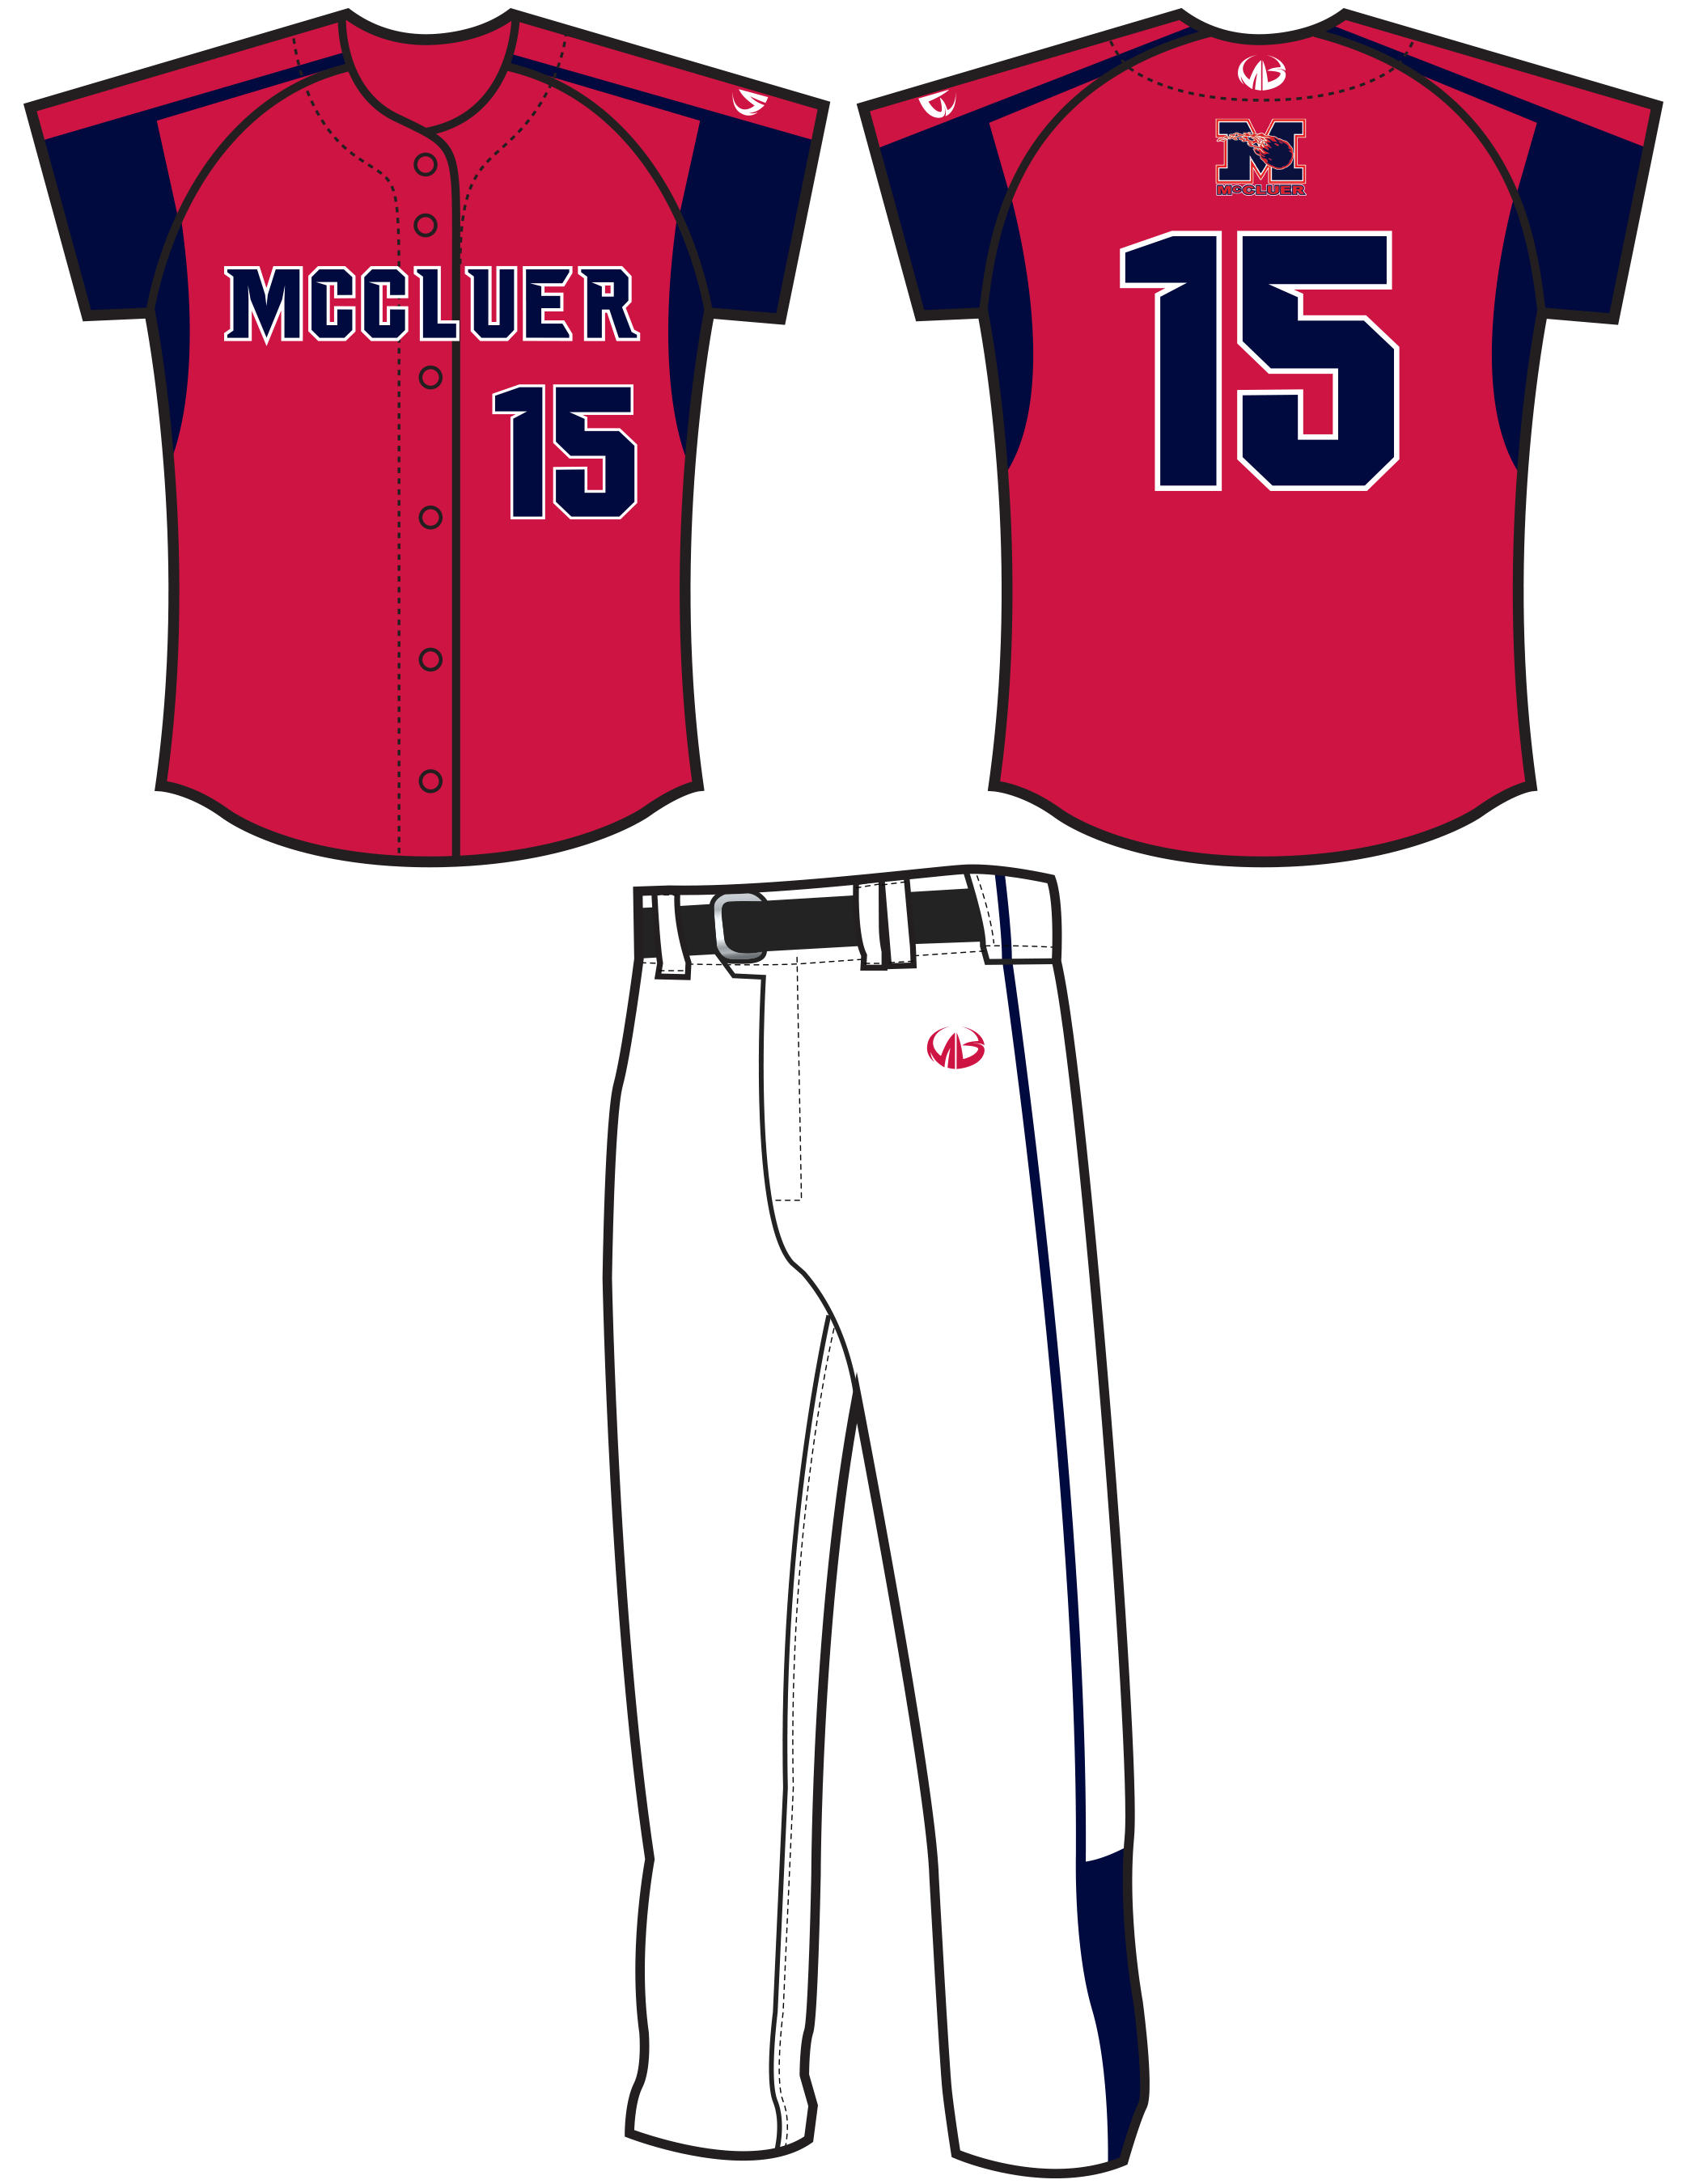 Baseball uniform clipart clipart royalty free library Custom Softball Uniforms | Custom Team Uniforms | Custom Uniform ... clipart royalty free library